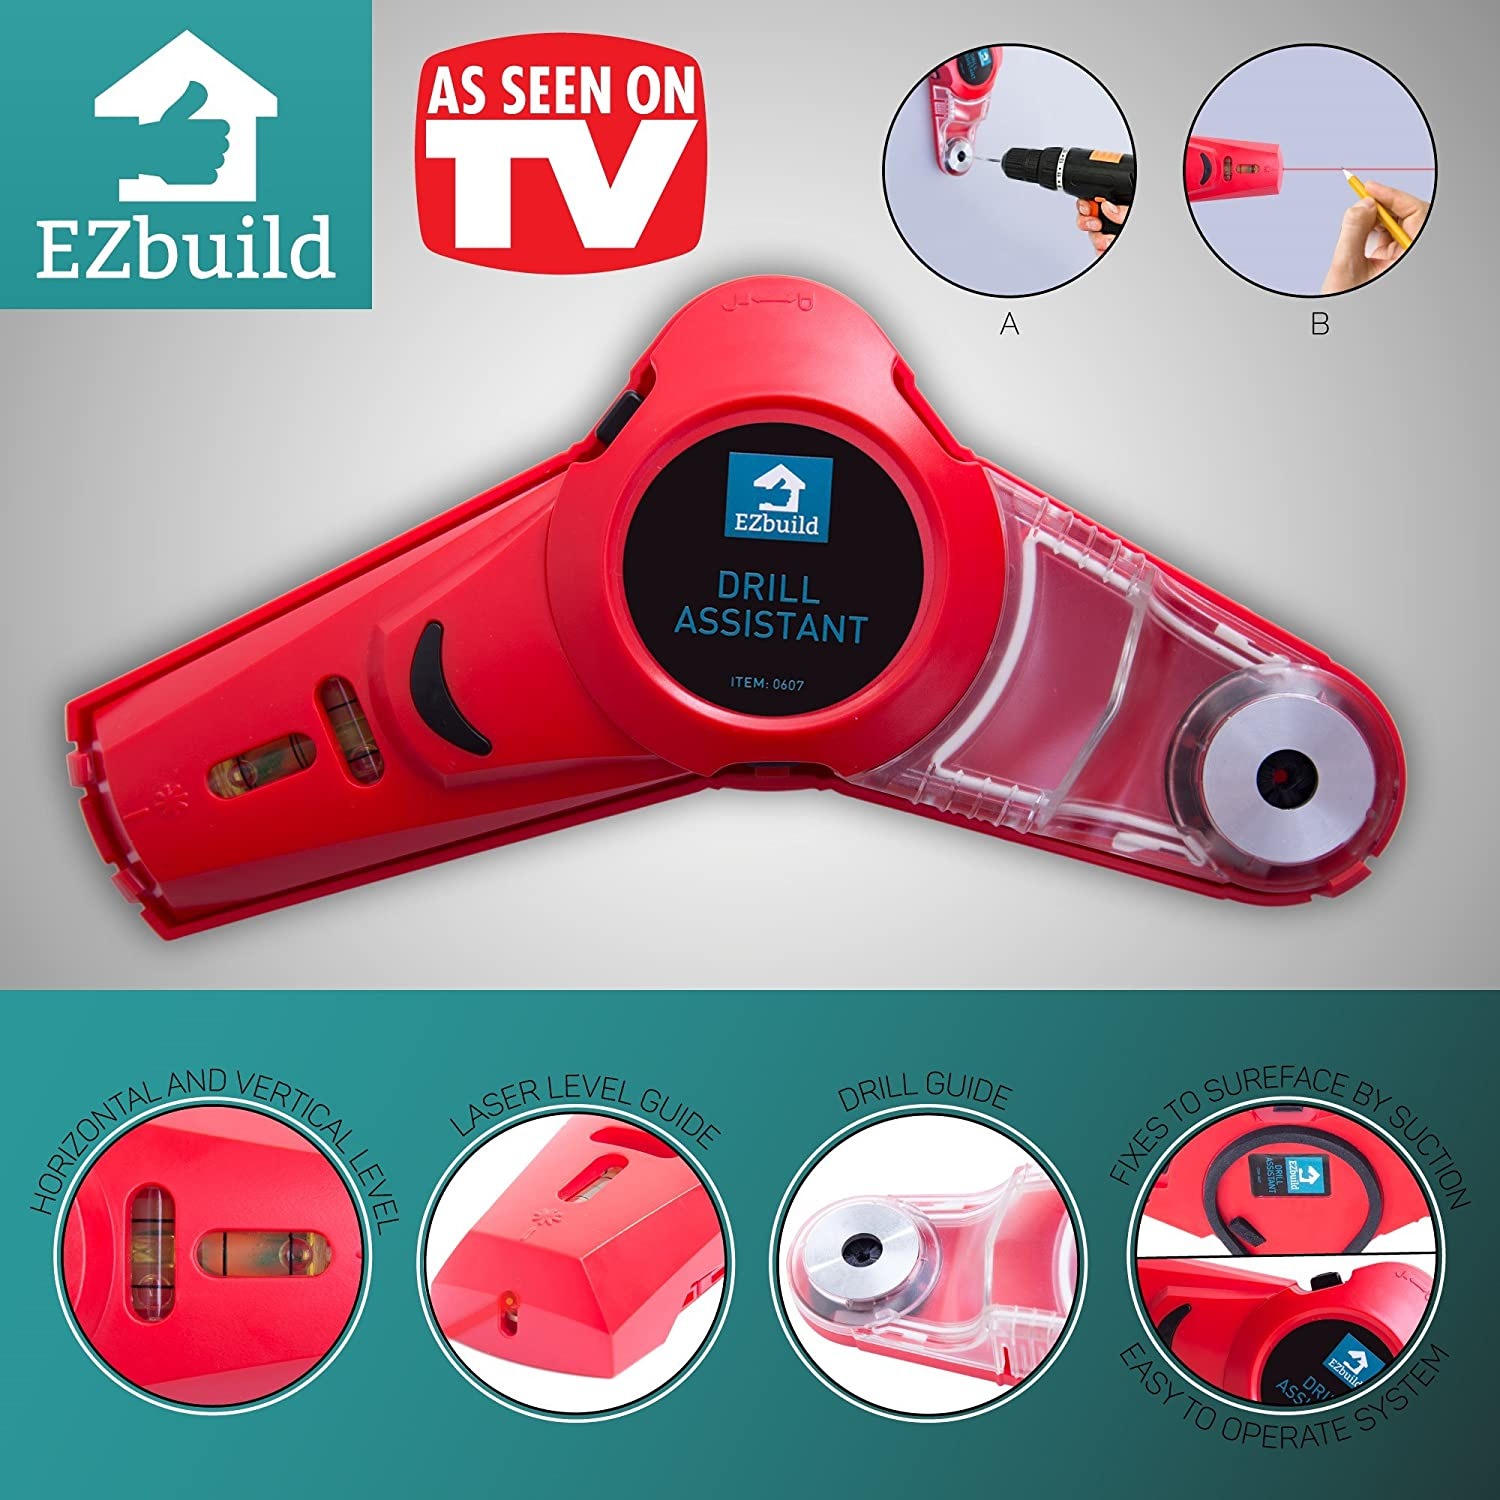 Laser Level Drill Dust Collector Tool Picture Hanging Tools for Men l Cordless Dust Collector Measuring Alignment and Drilling Support   Drill Buddy DIY Projects <1mW